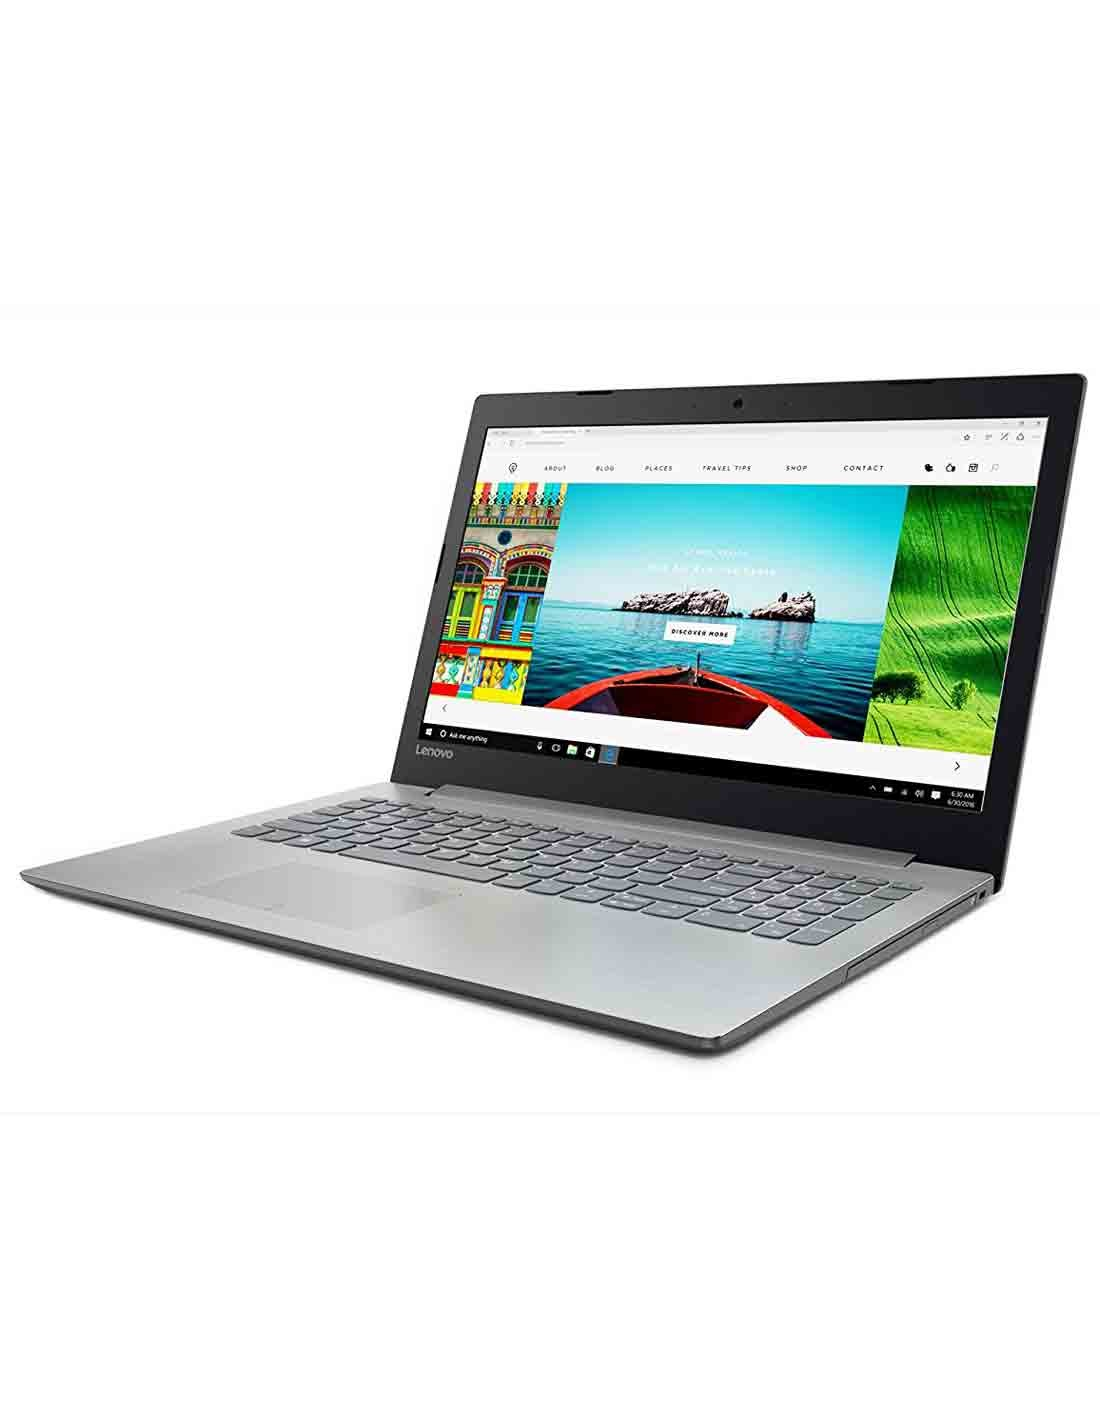 Lenovo IdeaPad 320 15-inch buy online at a cheap price and free delivery in Dubai